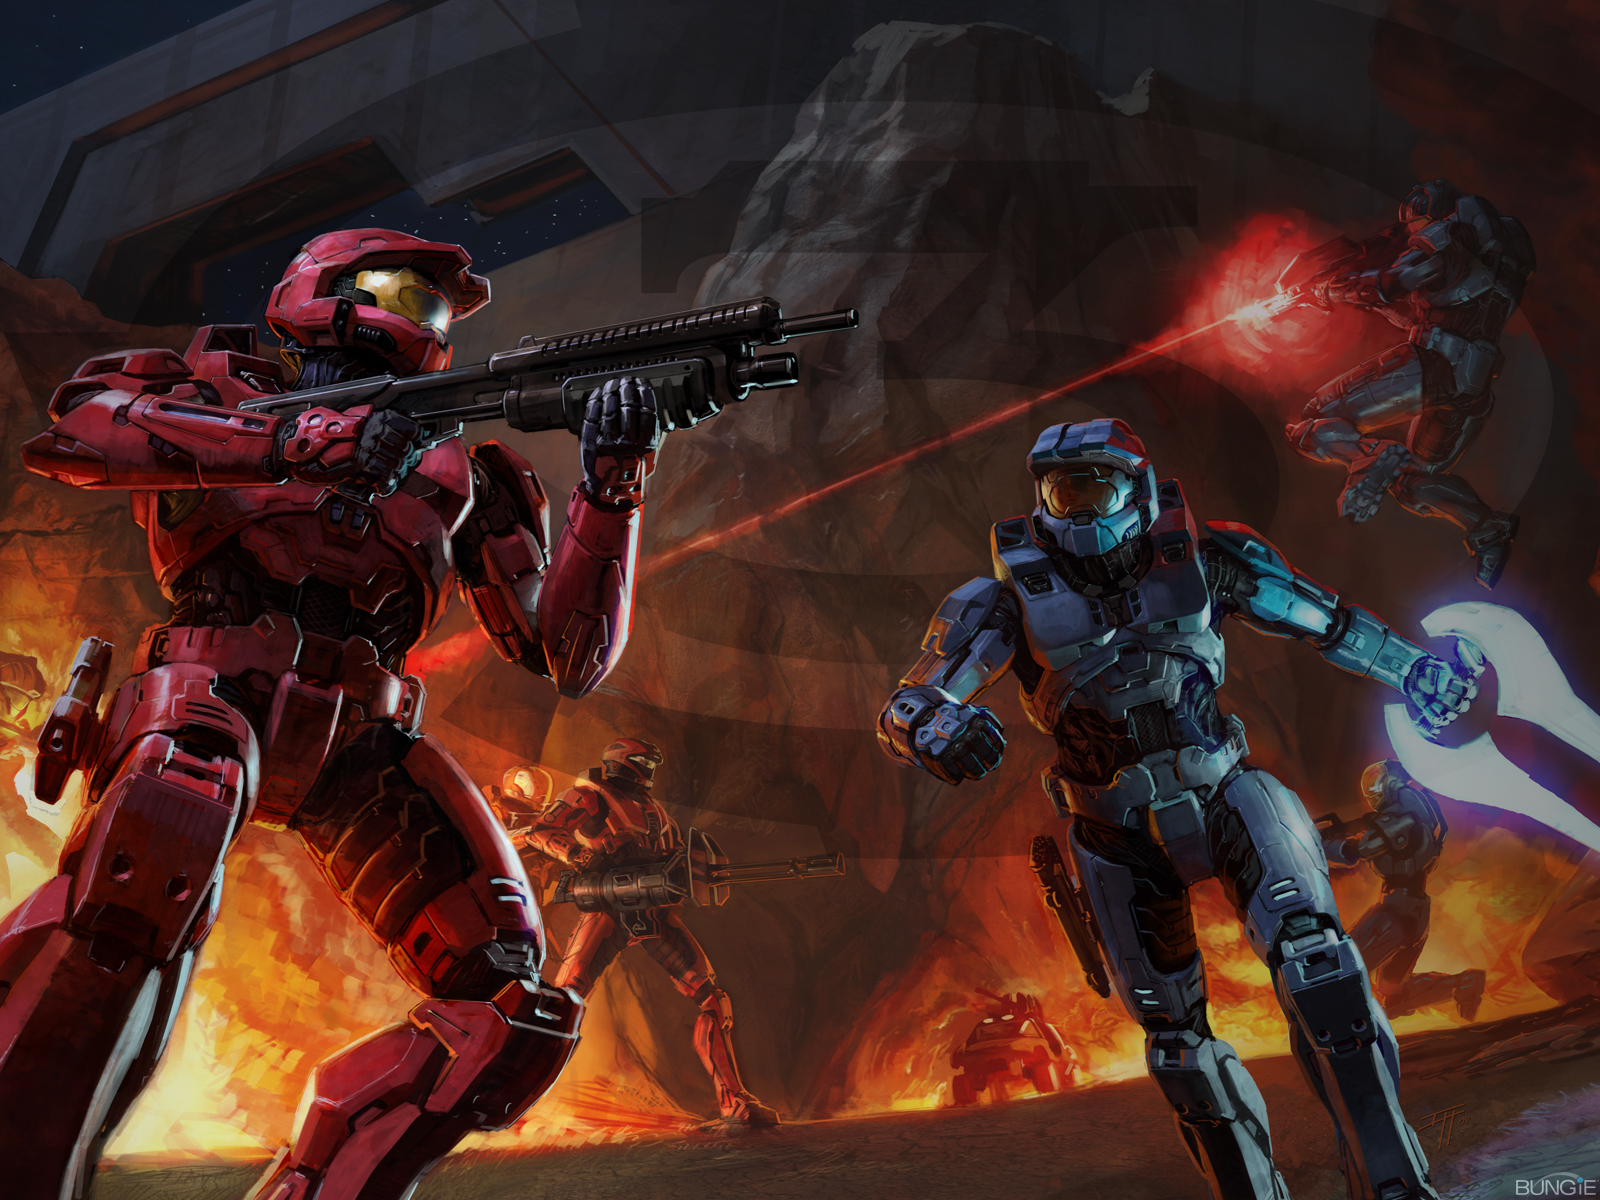 halo-3-multiplayer-wallpaper.jpg « MyConfinedSpace